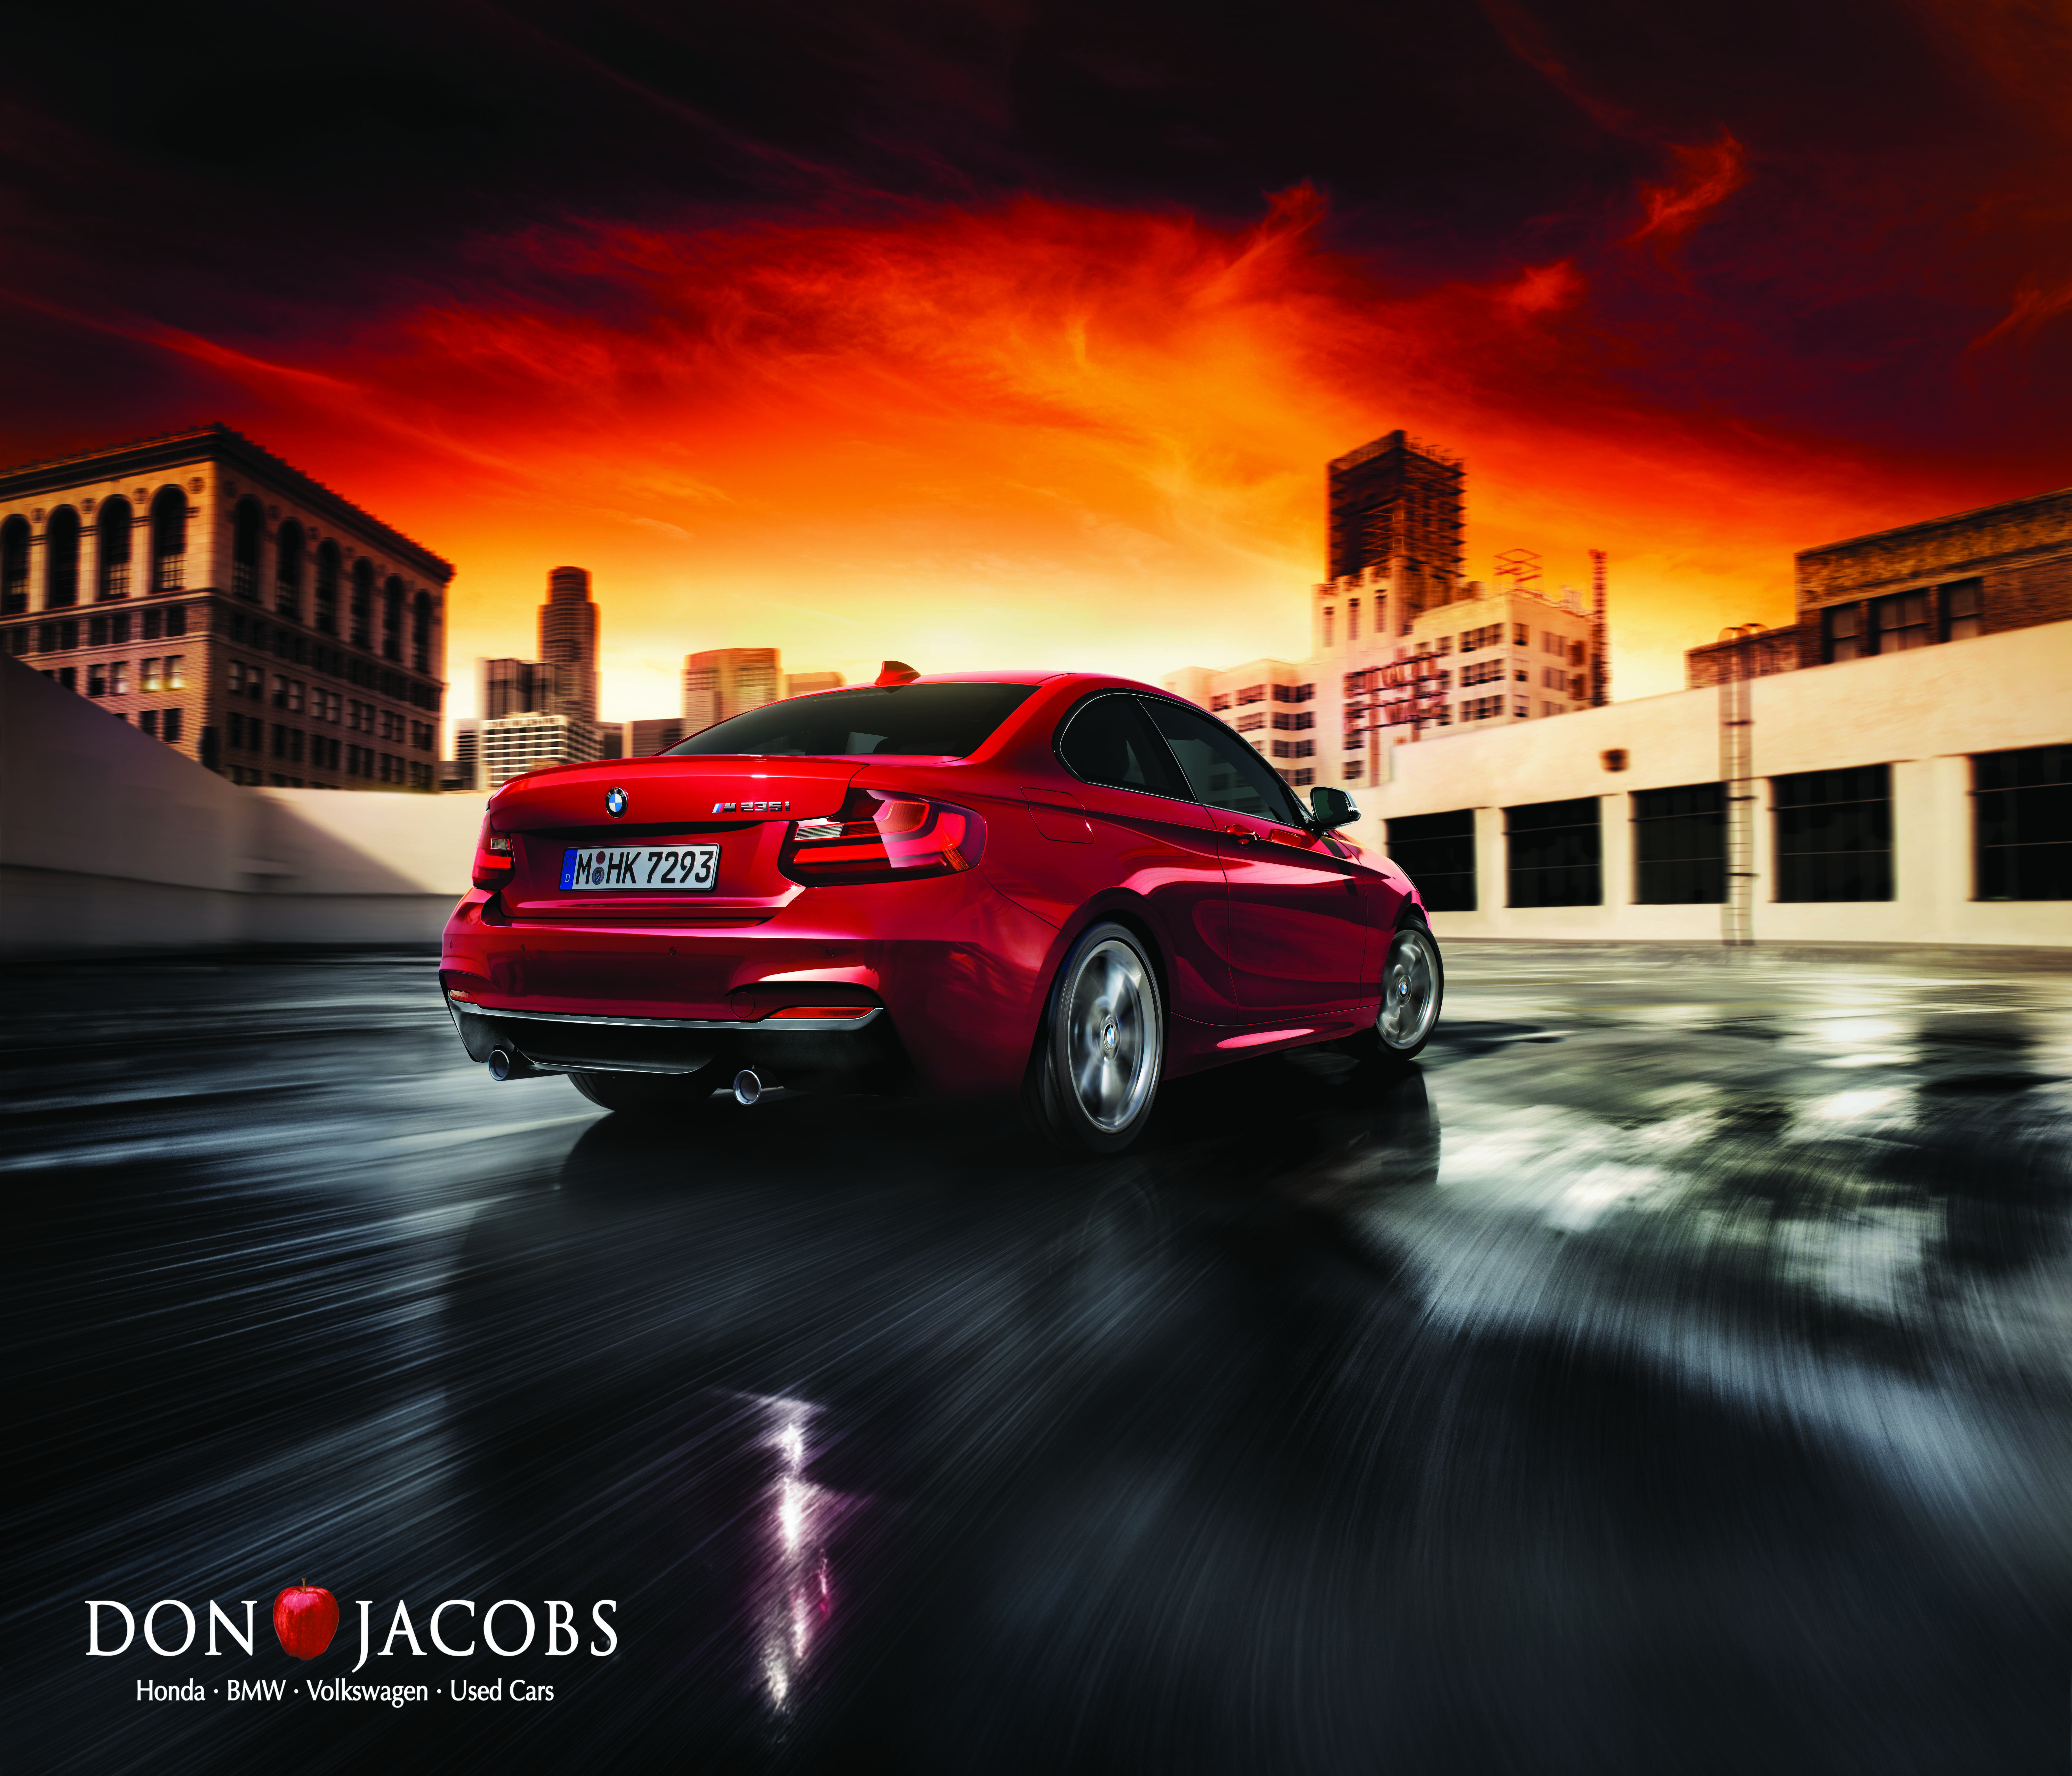 Check Out The All New 2014 Bmw 2 Series At Don Jacobs Bmw In Lexington Ky Find Cars For Sale Bmw Models Bmw Cars For Sale